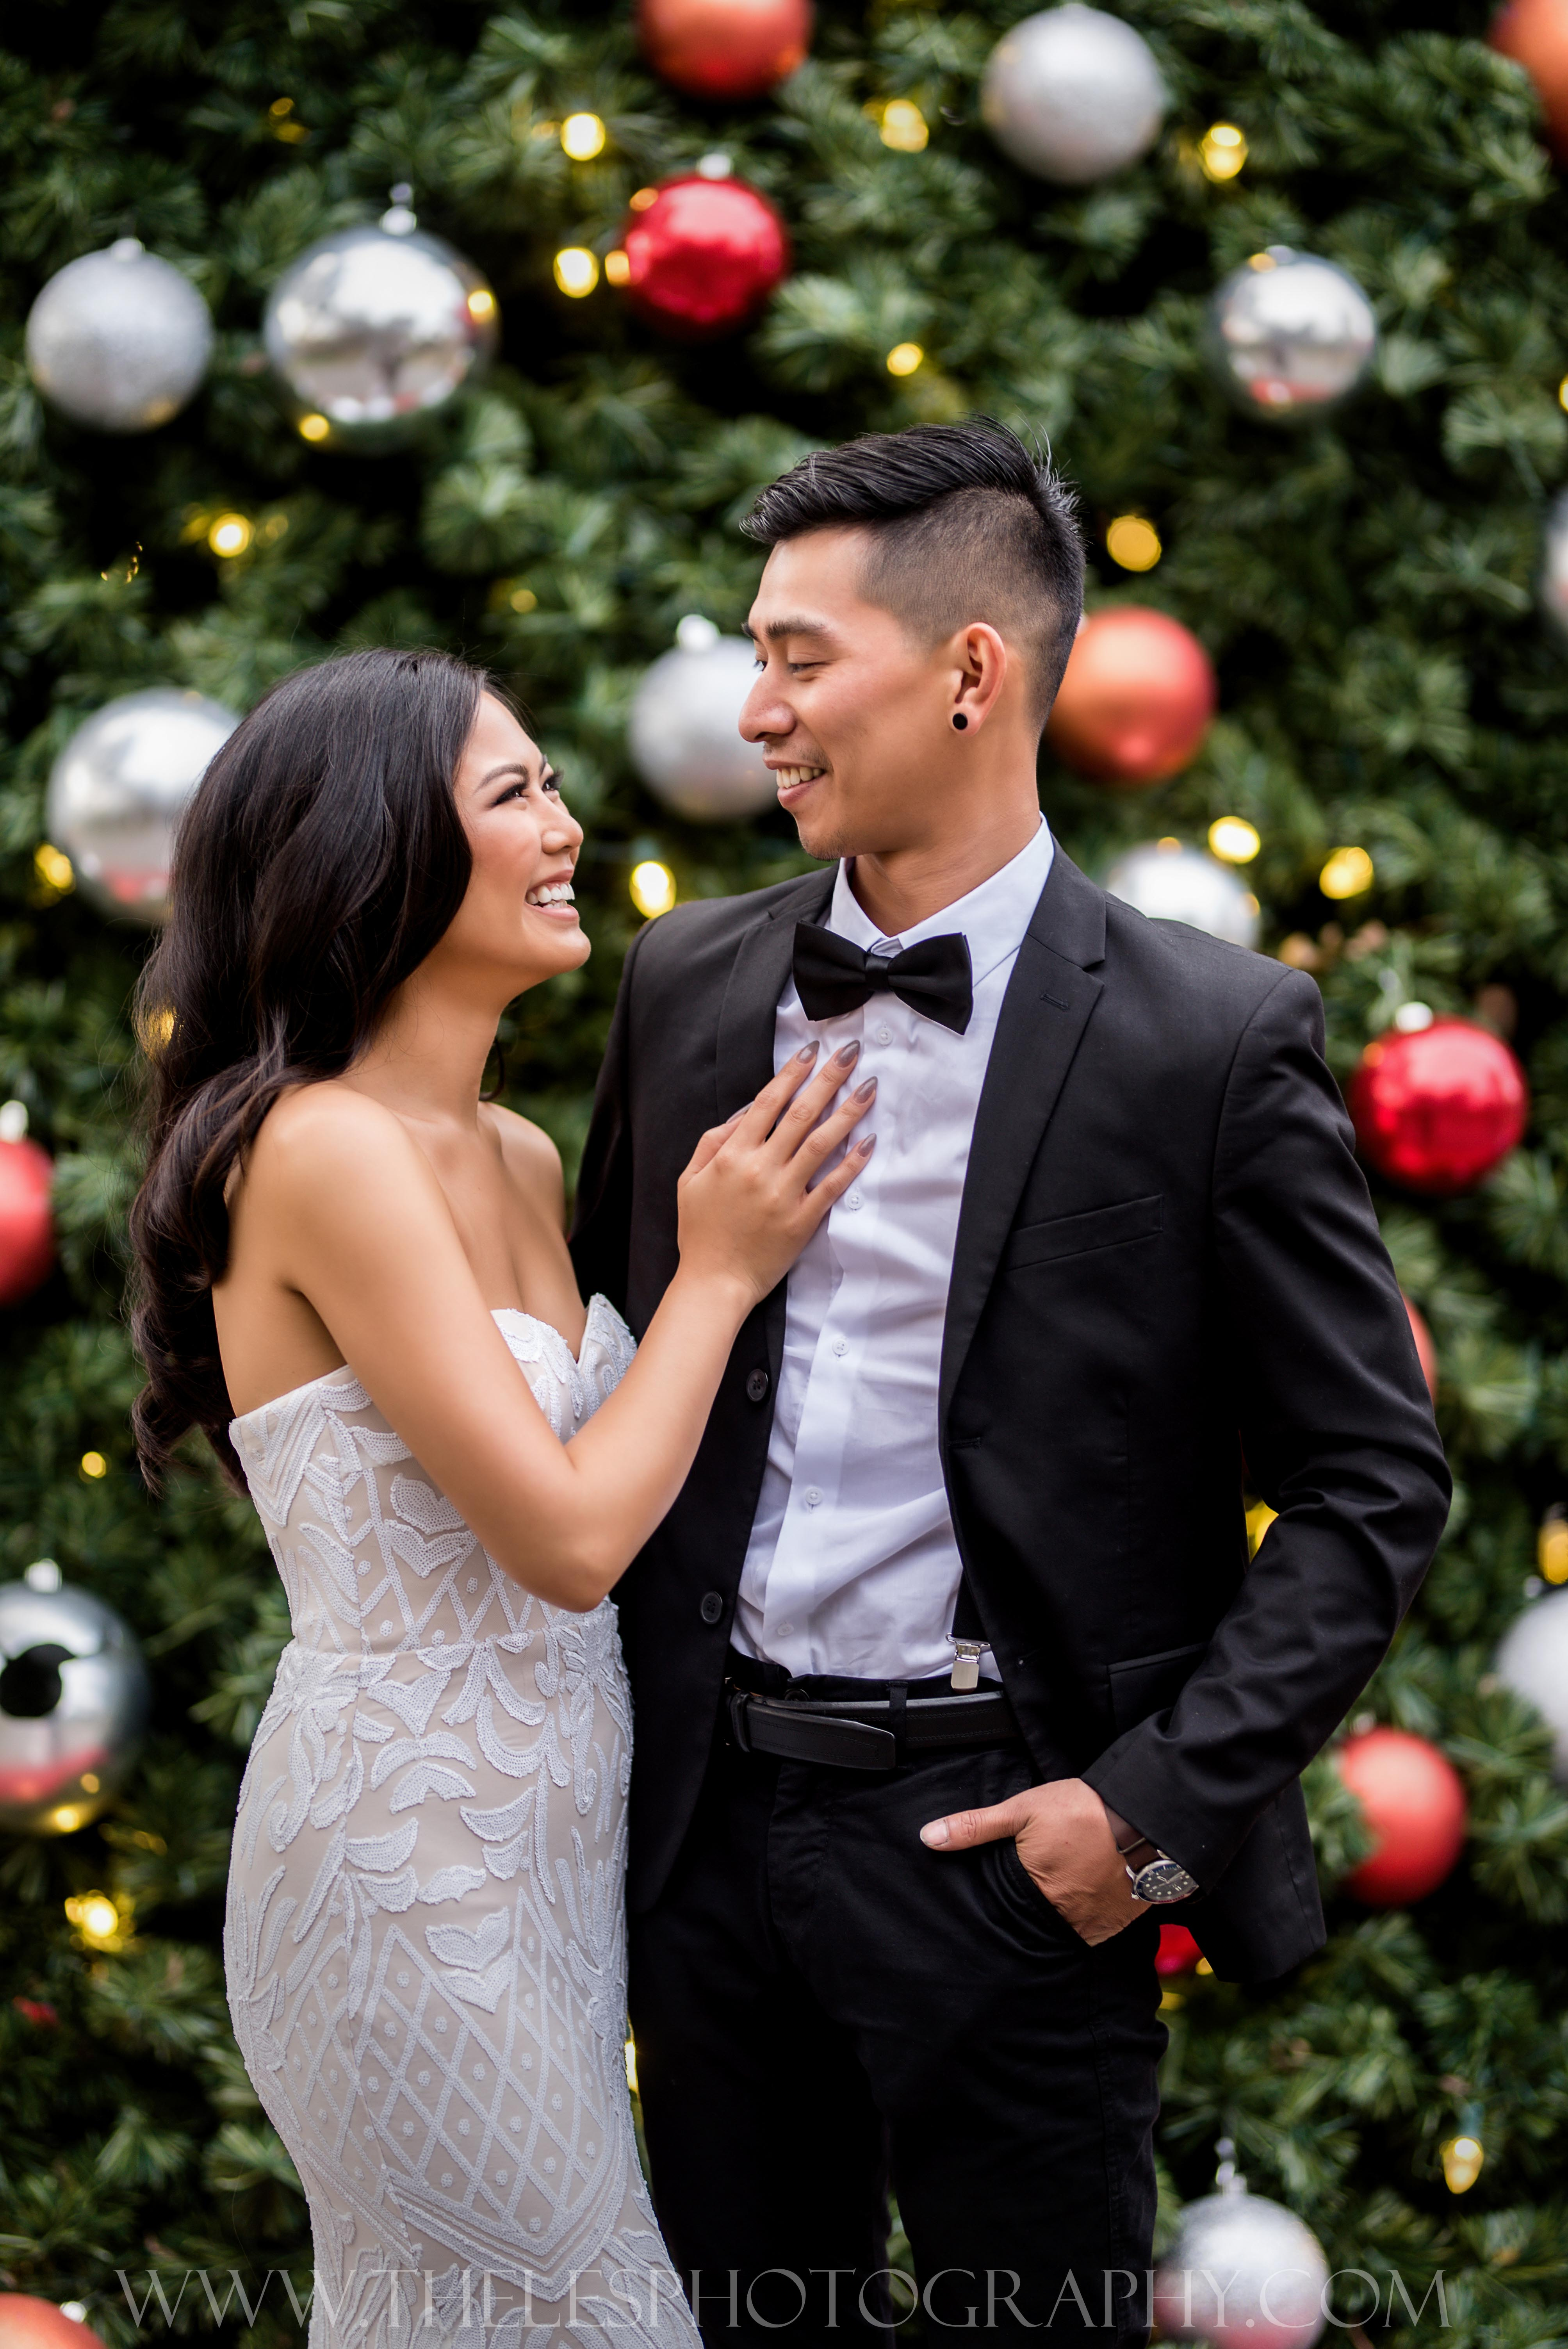 Thu and Hieu's Engagement Highlight 07